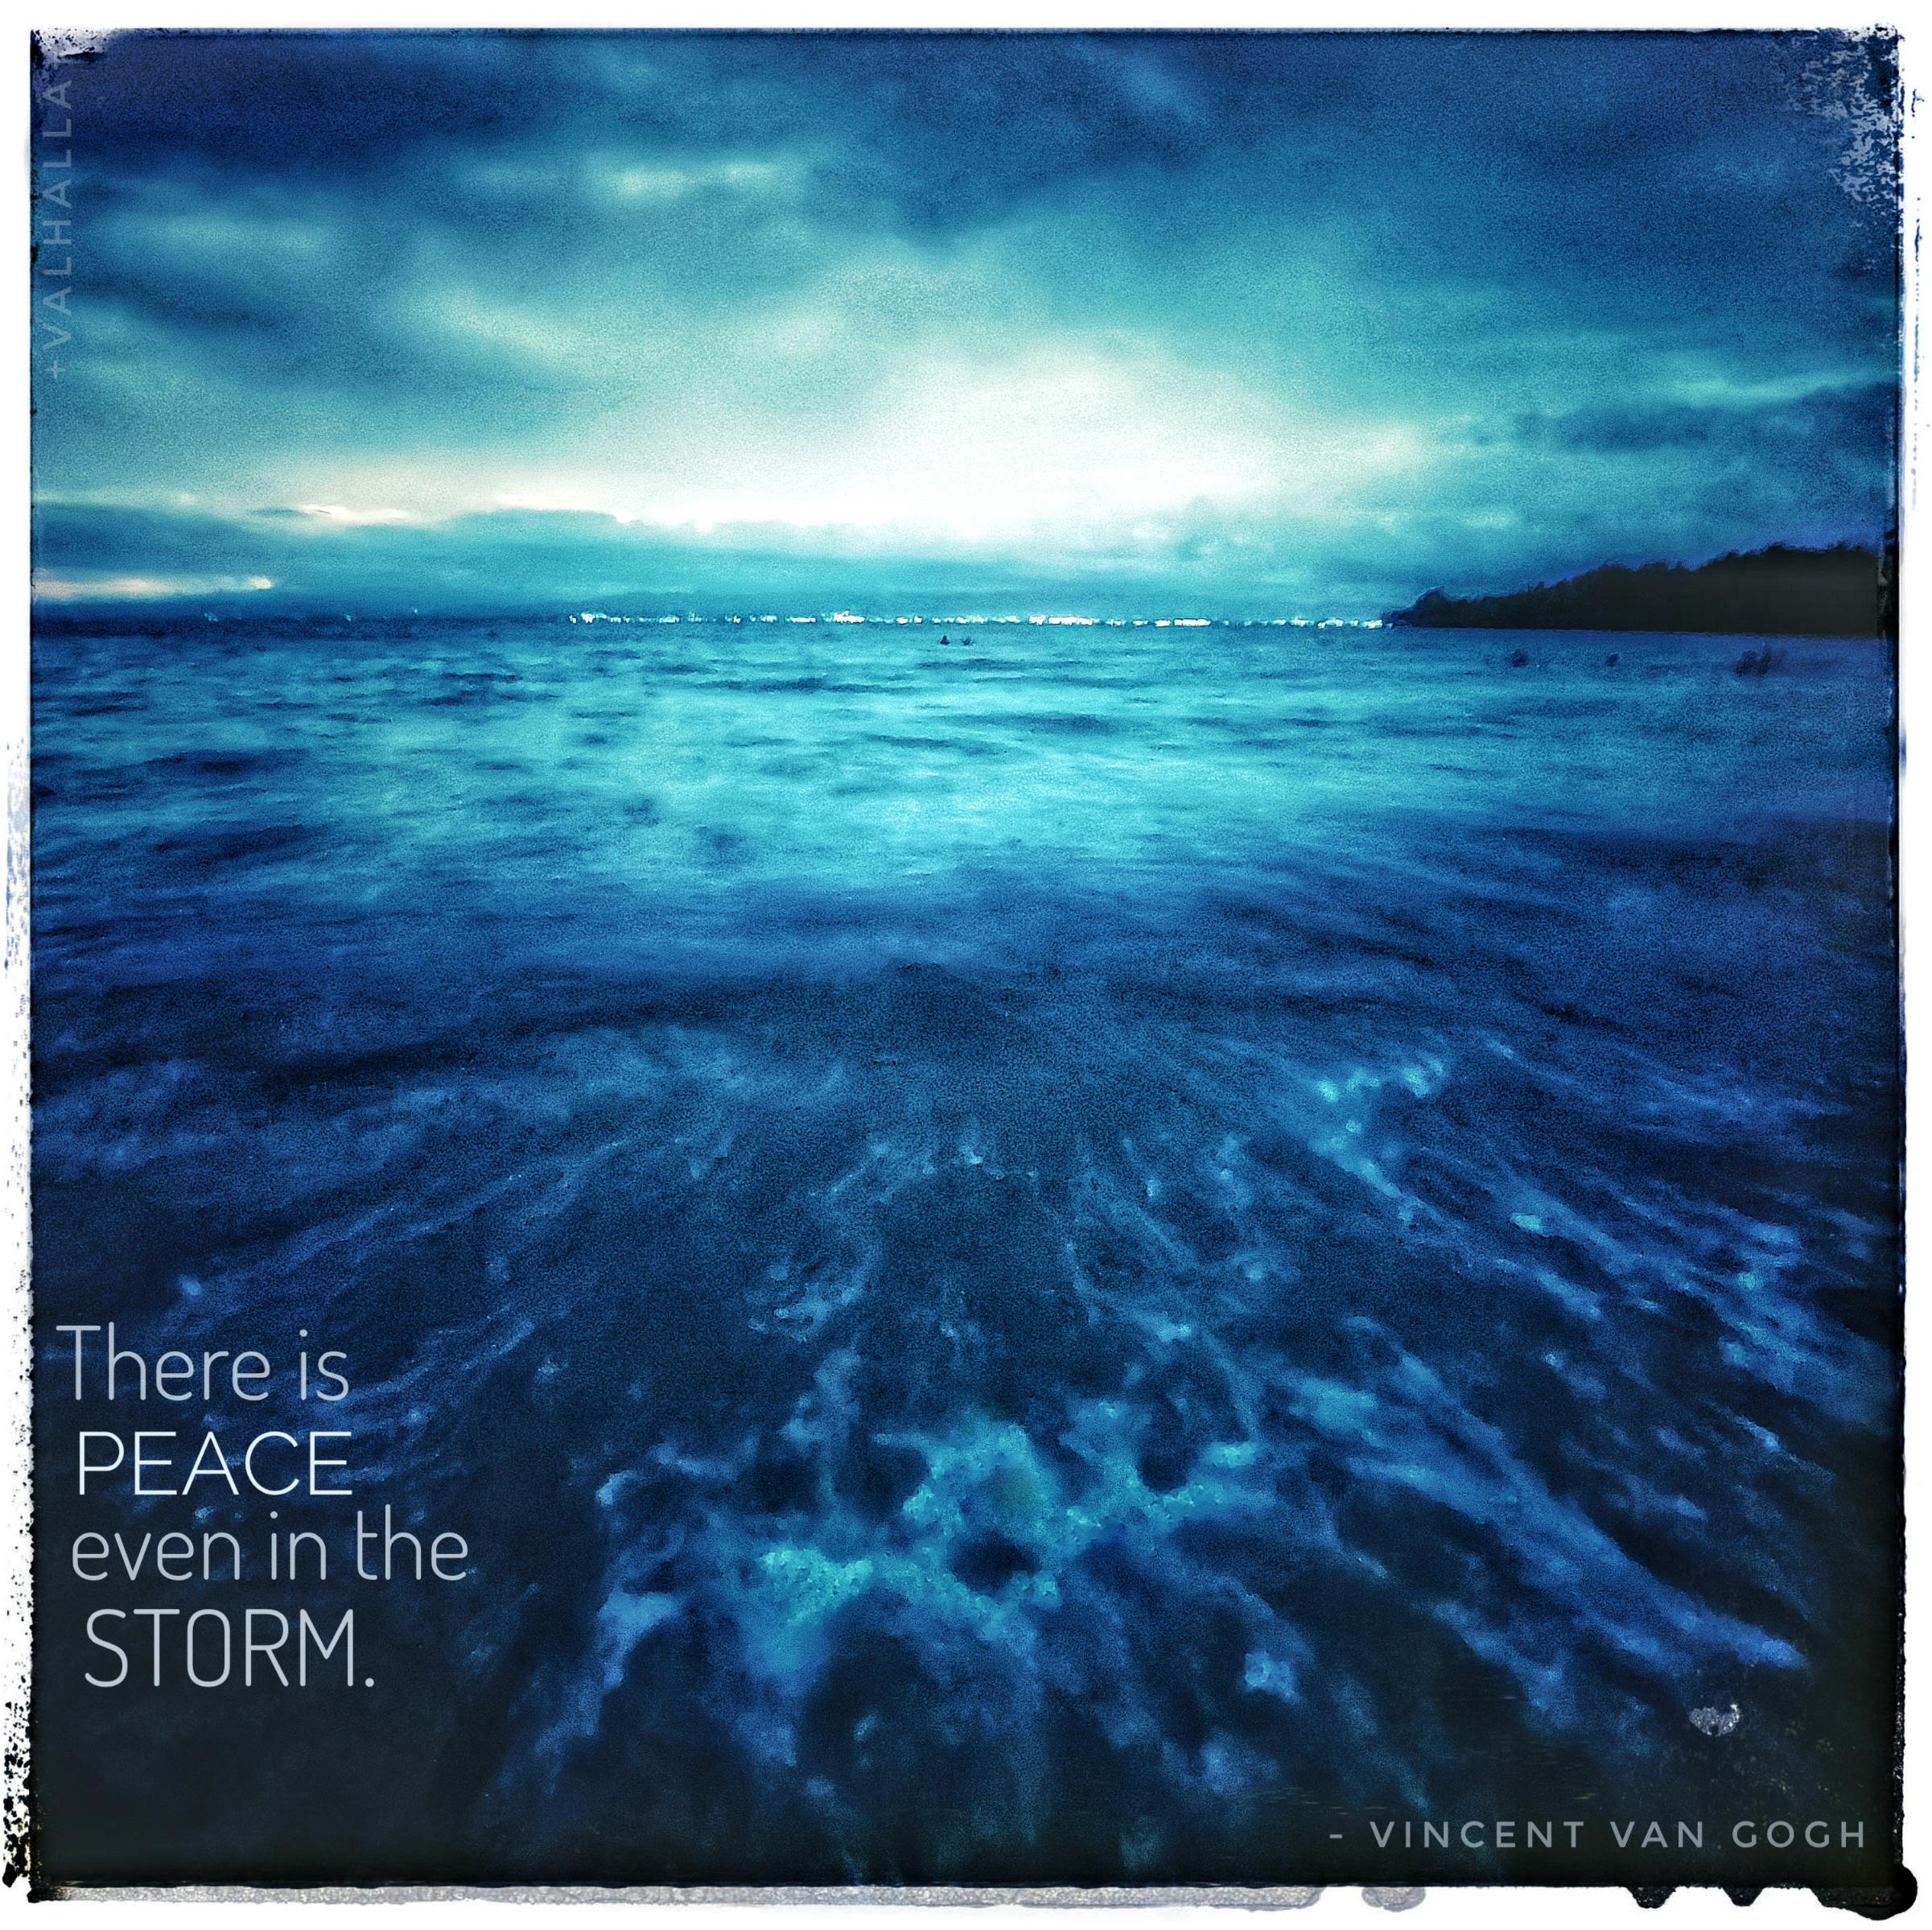 """There is peace even in the storm"" -Vincent van Gogh [2402×2398]"